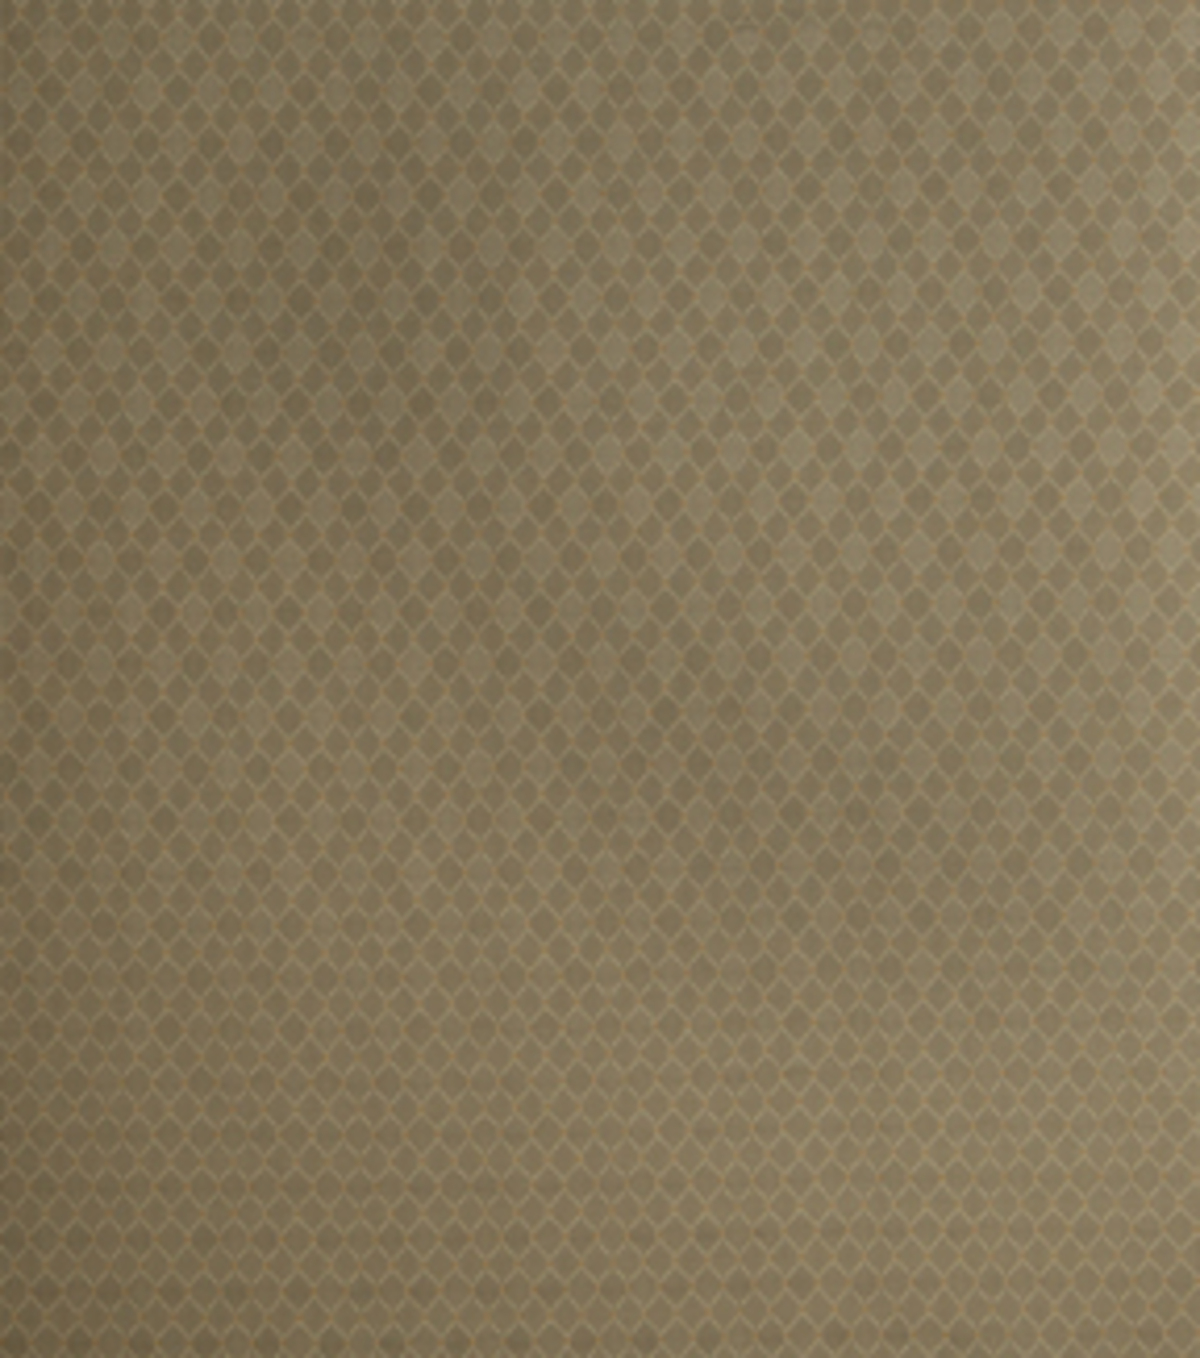 Home Decor 8\u0022x8\u0022 Fabric Swatch-Eaton Square Coastal Olive